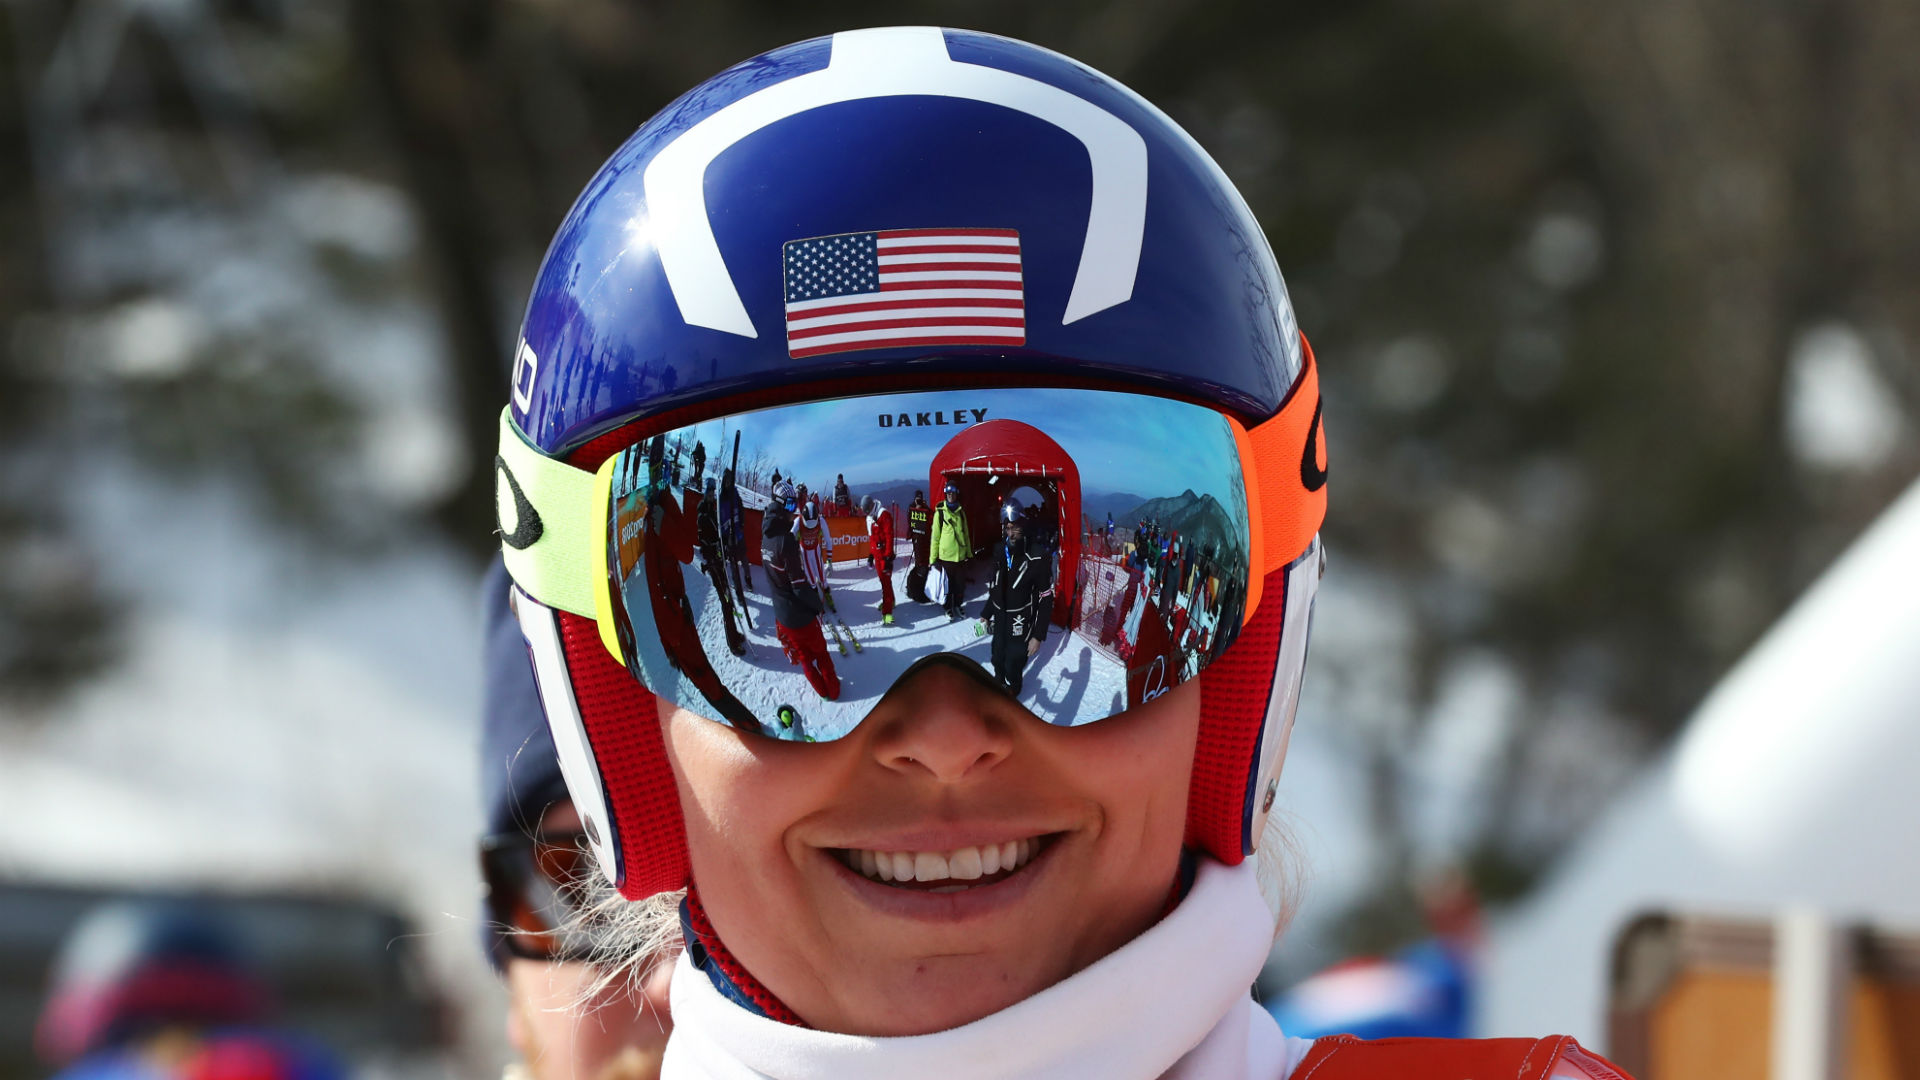 Ski champion Lindsey Vonn keeps secret message in Greek